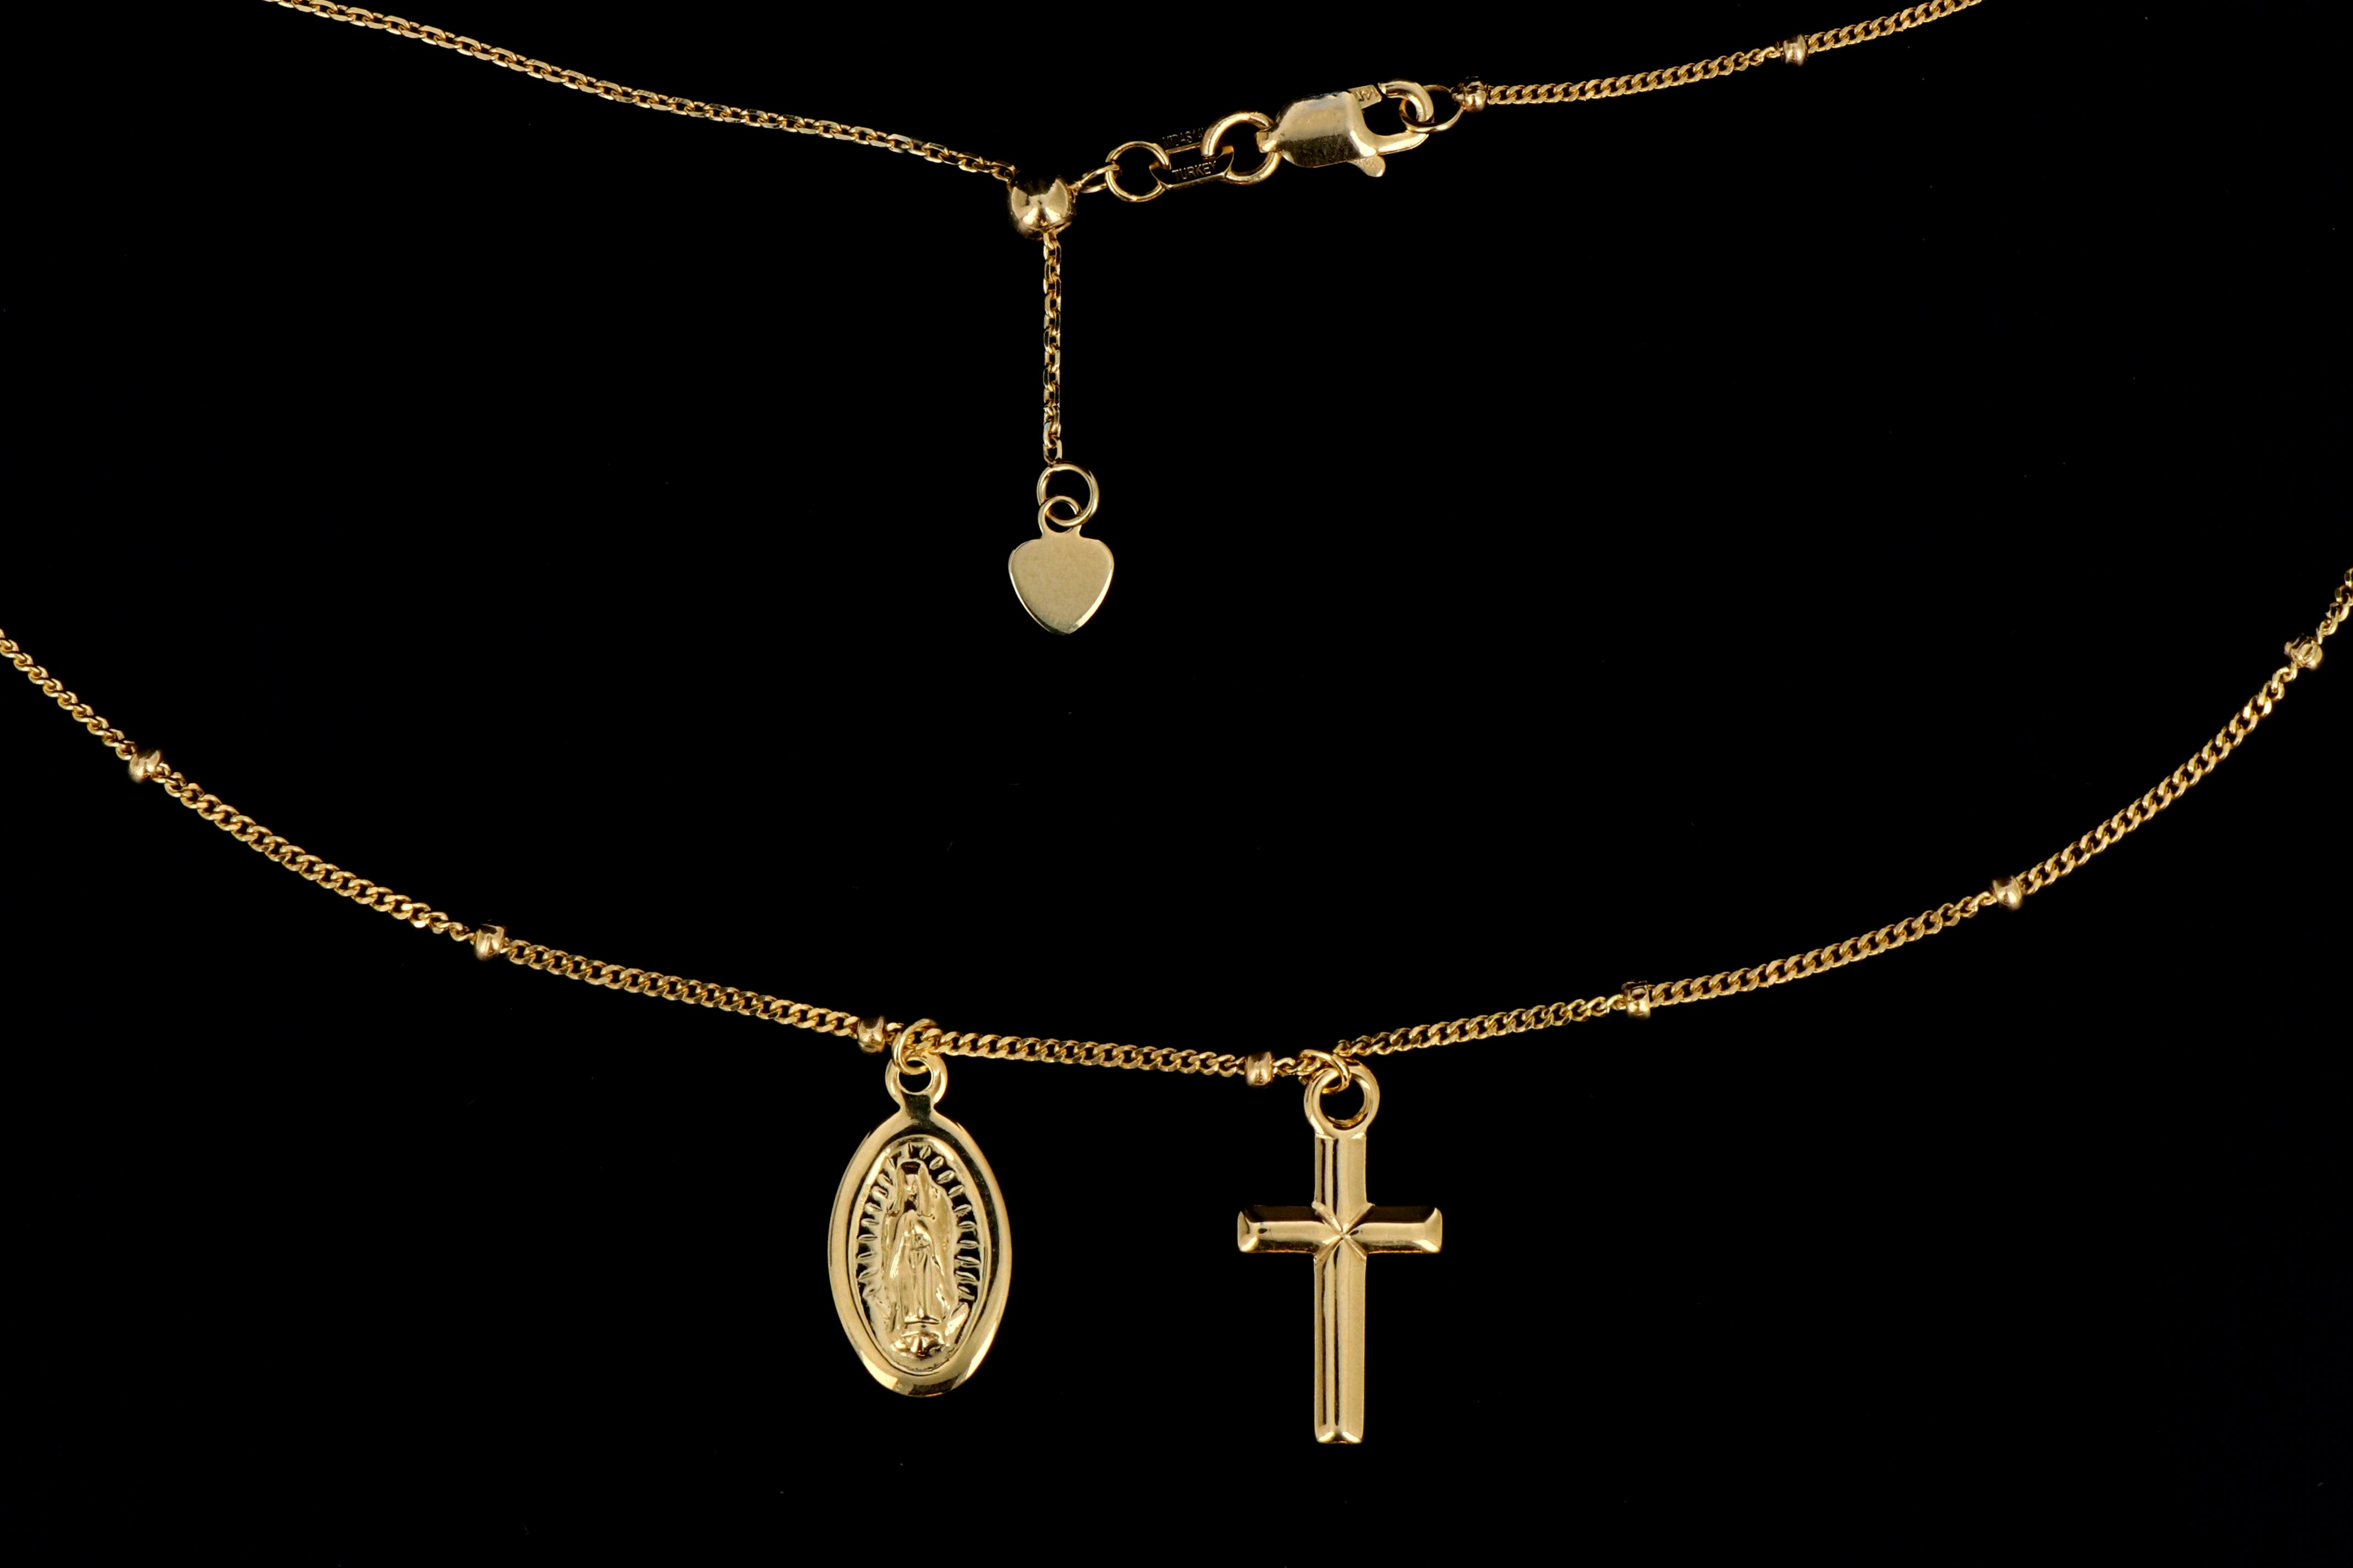 14K Yellow Gold Cross and Virgin Mary Necklace